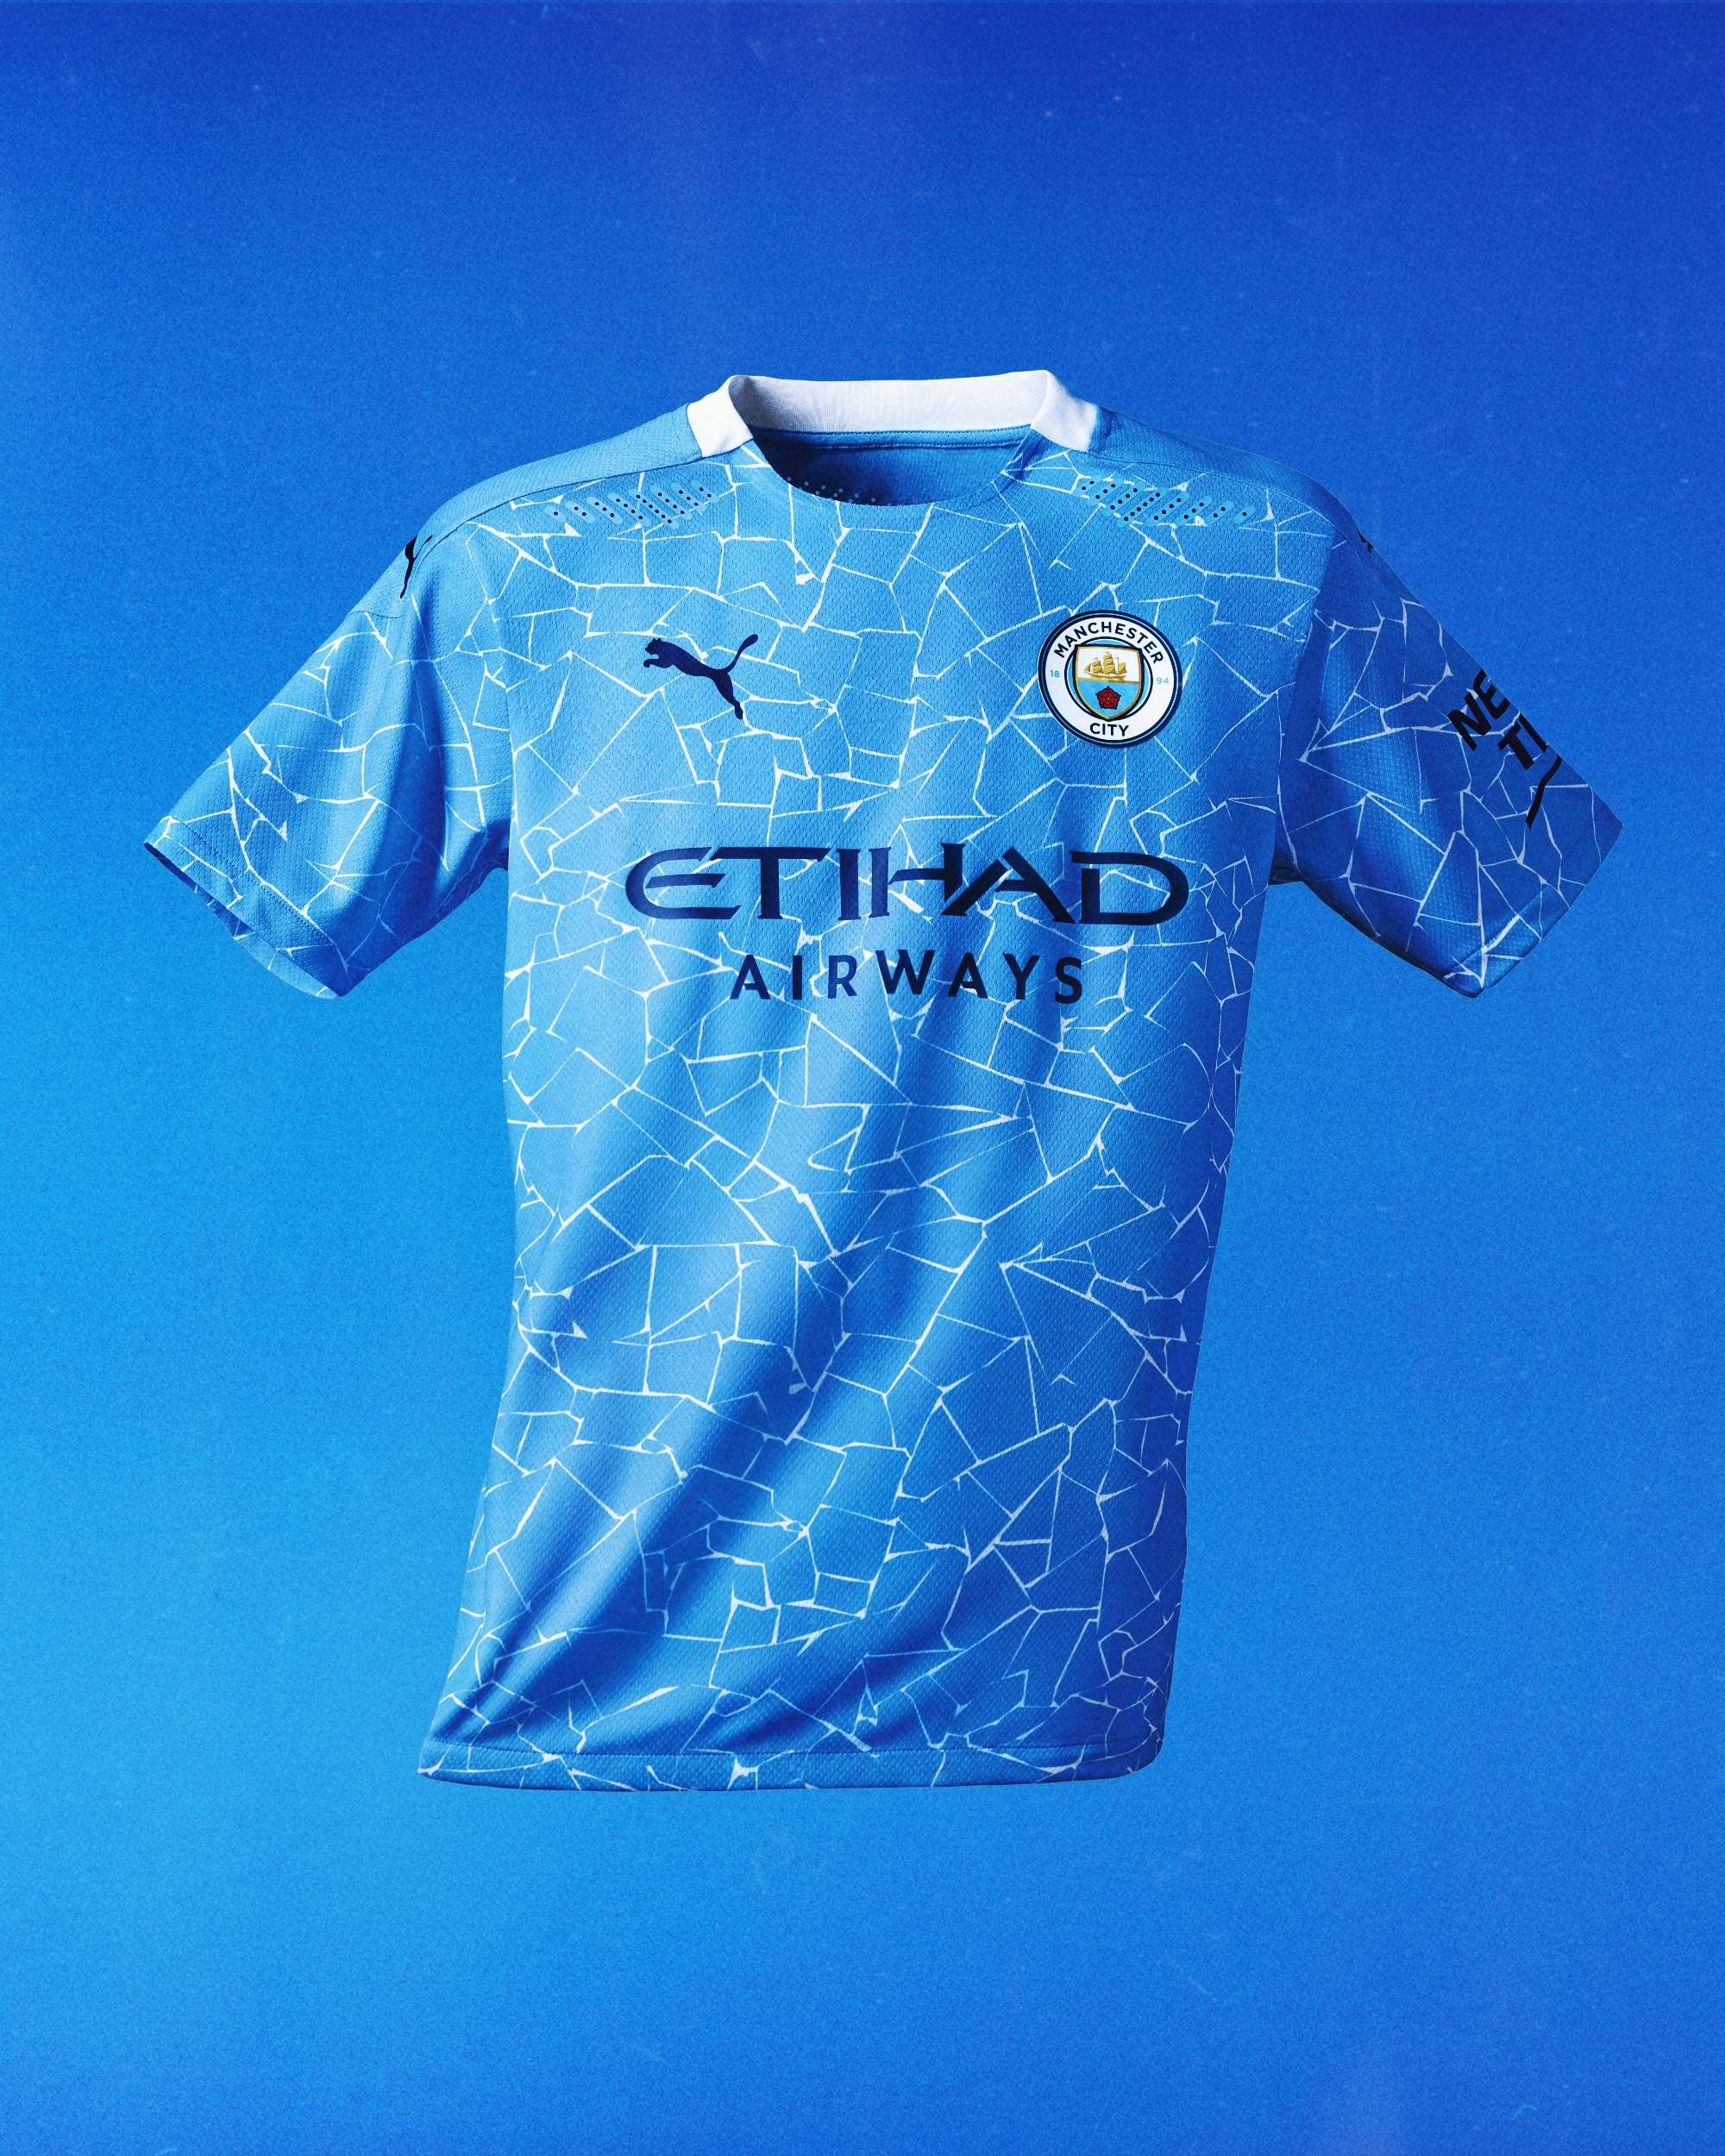 From The Northern Quarter To The Etihad Man City Unveil New Mosaic Inspired 2020 21 Home Kit Goal Com